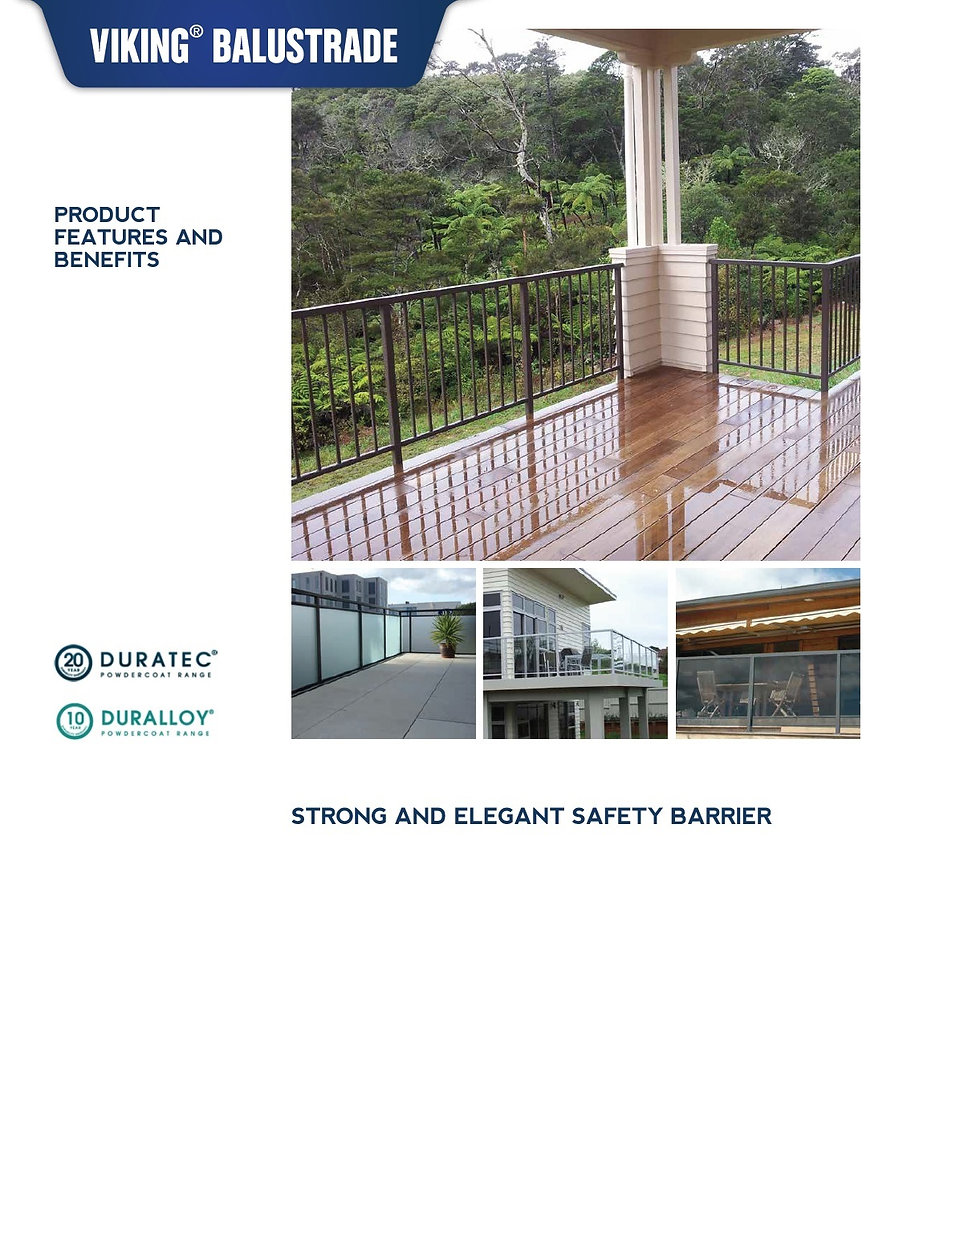 Balustrading and More, Whangarei, Viking Balustrade System